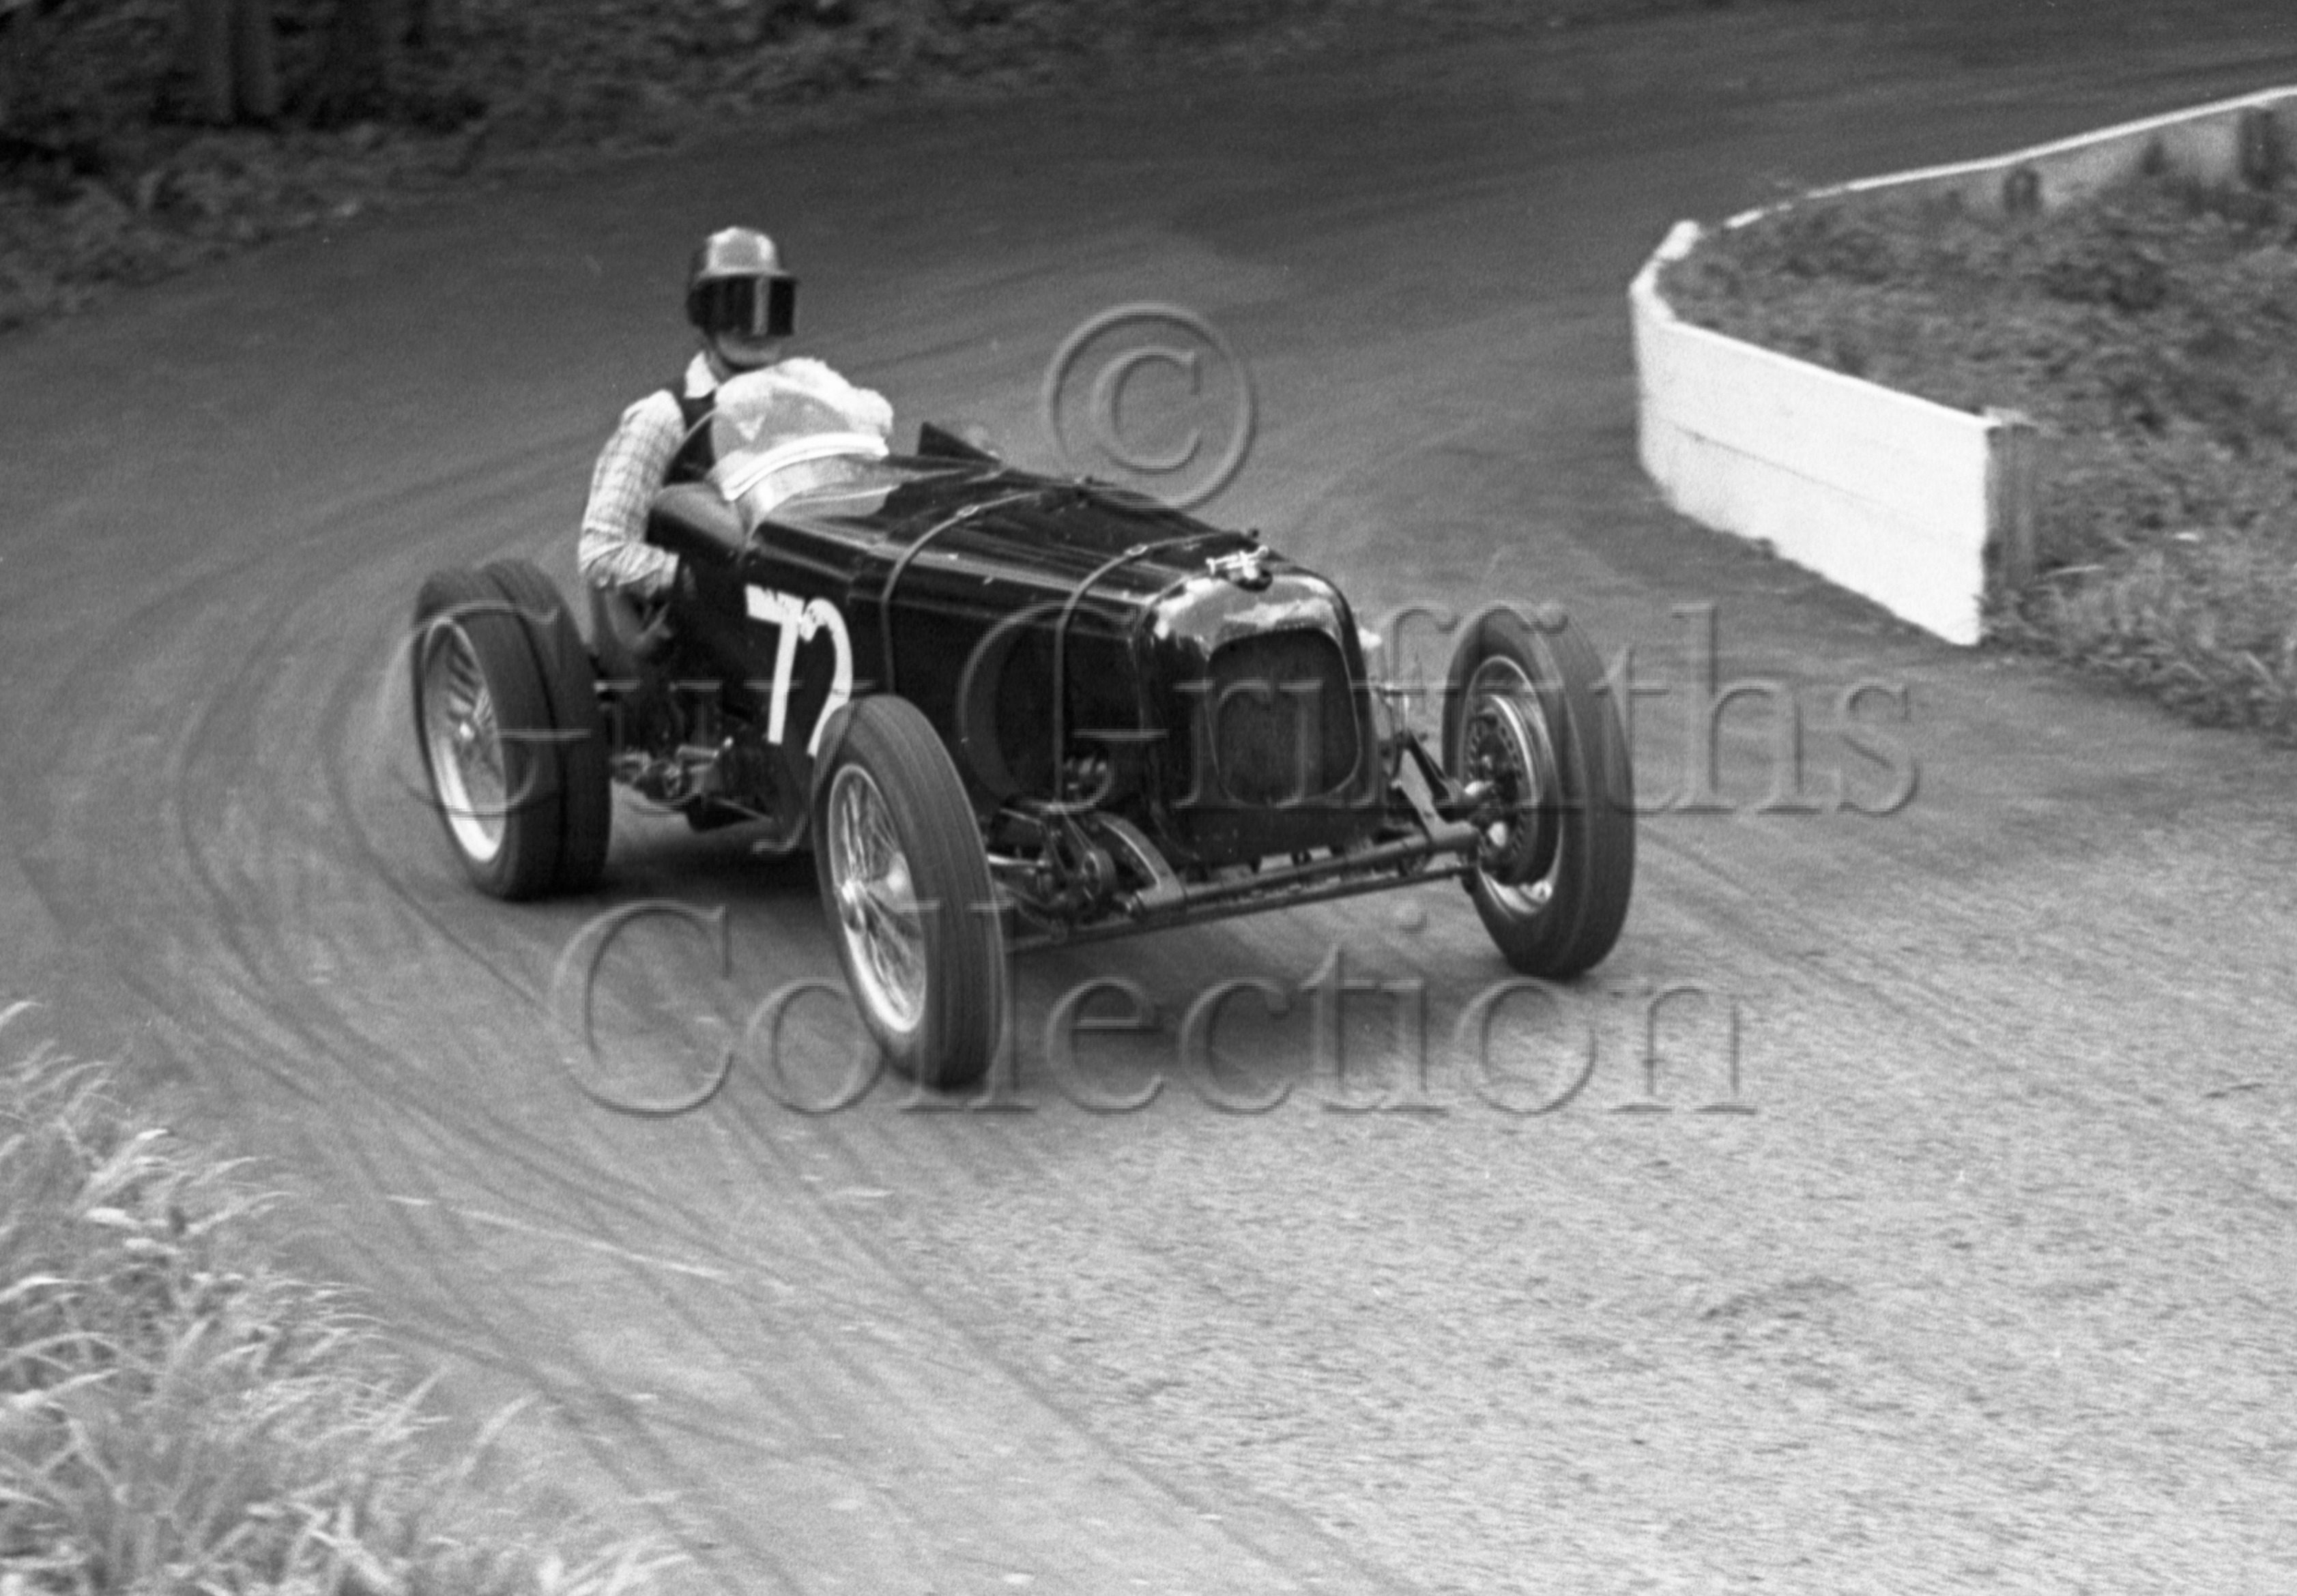 70-14–G-Shea-Simmonds–Rapier–Prescott–17-05-1953.jpg - The Guy Griffiths Collection